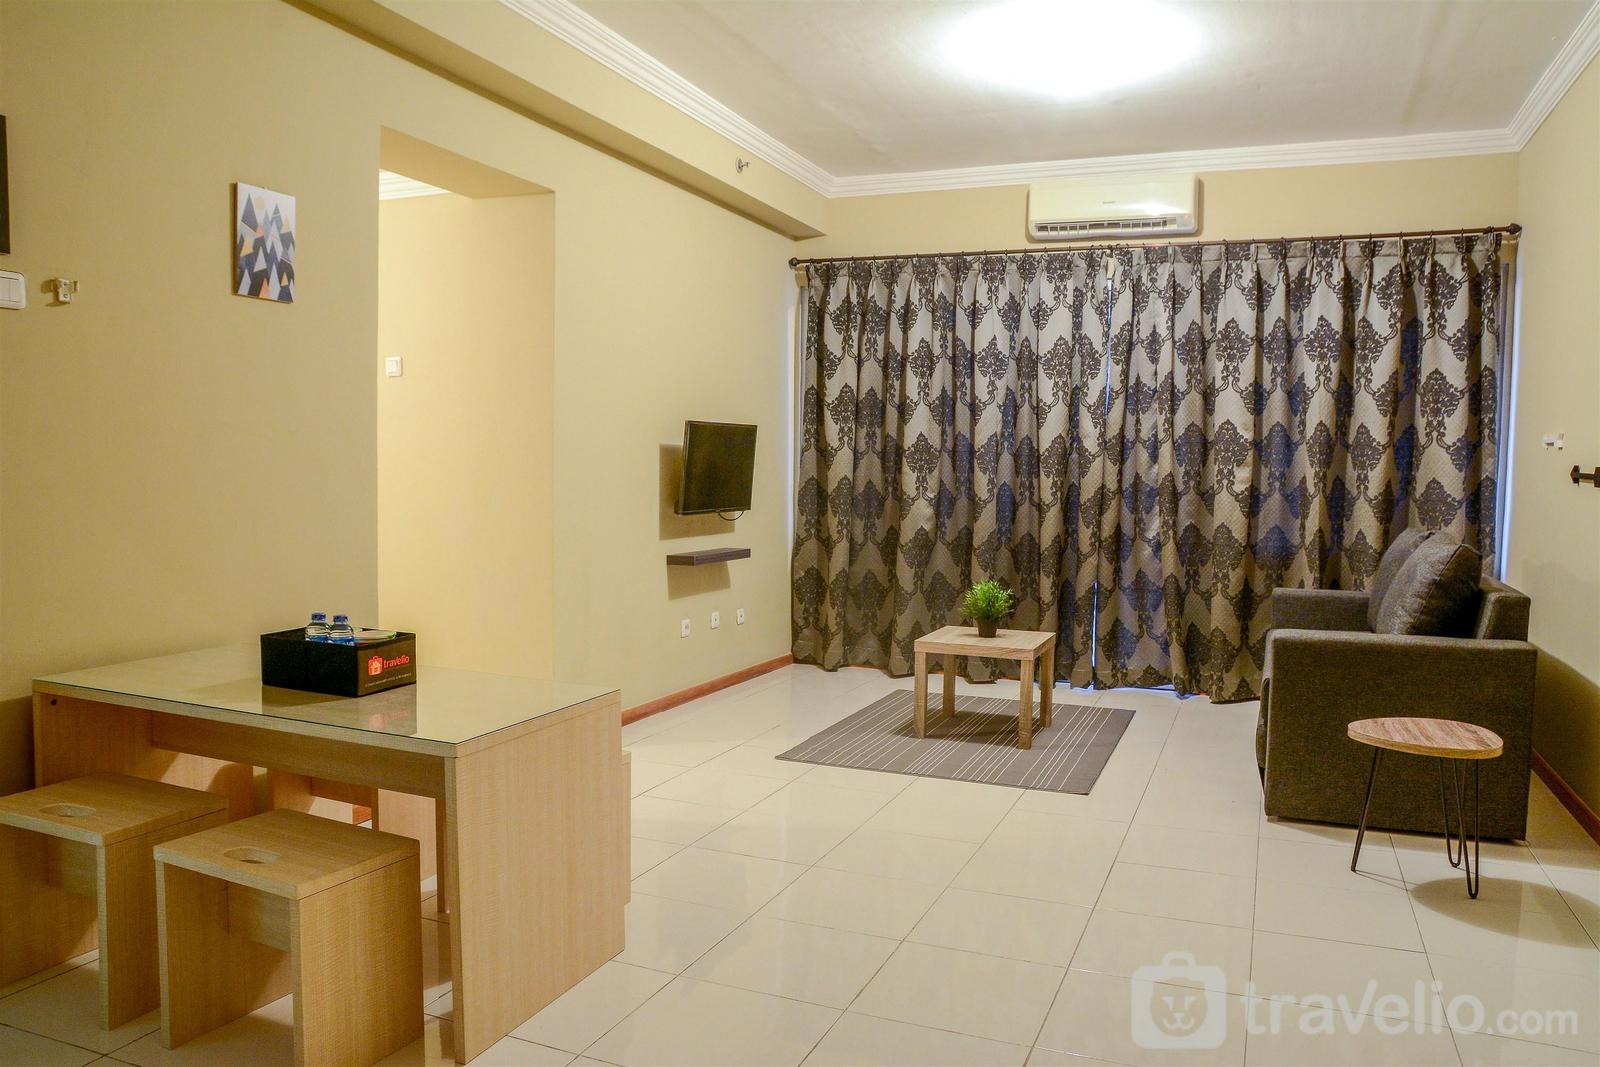 Grand Palace Kemayoran - Extra Space 3BR Apartment Grand Palace Kemayoran By Travelio